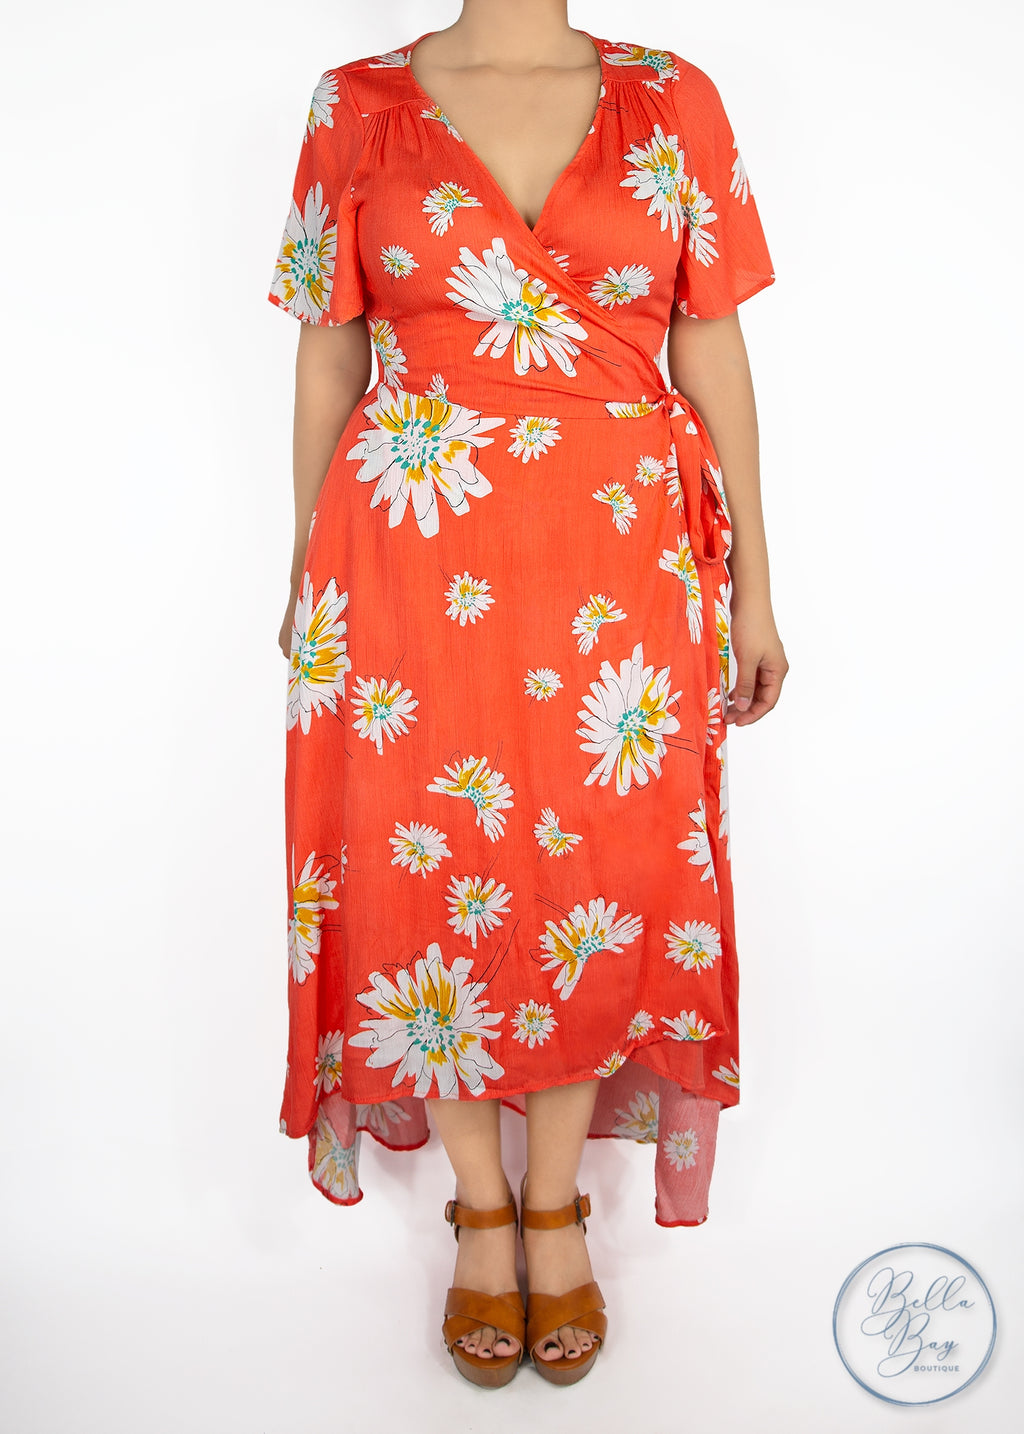 Paisley Raye Primrose Wrap Dress- Orange with White Floral (0X) - Paisley Raye with Bella Bay Boutique, shop now at  https://shopbellabay.com/ or locally in Newport Oregon